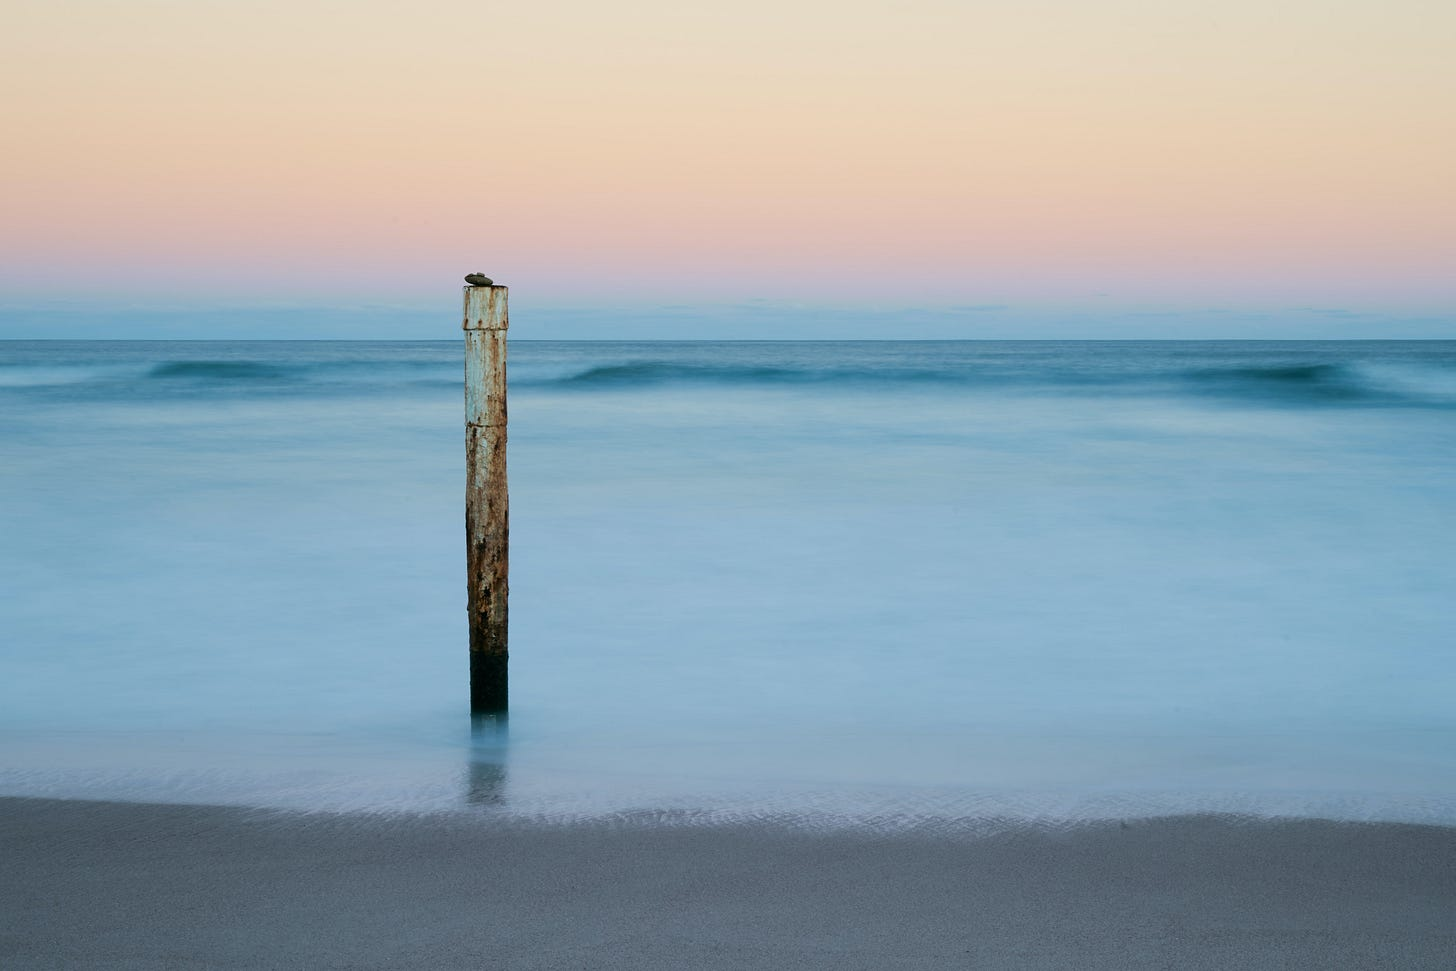 pole sticking out of the sand and water on a beach